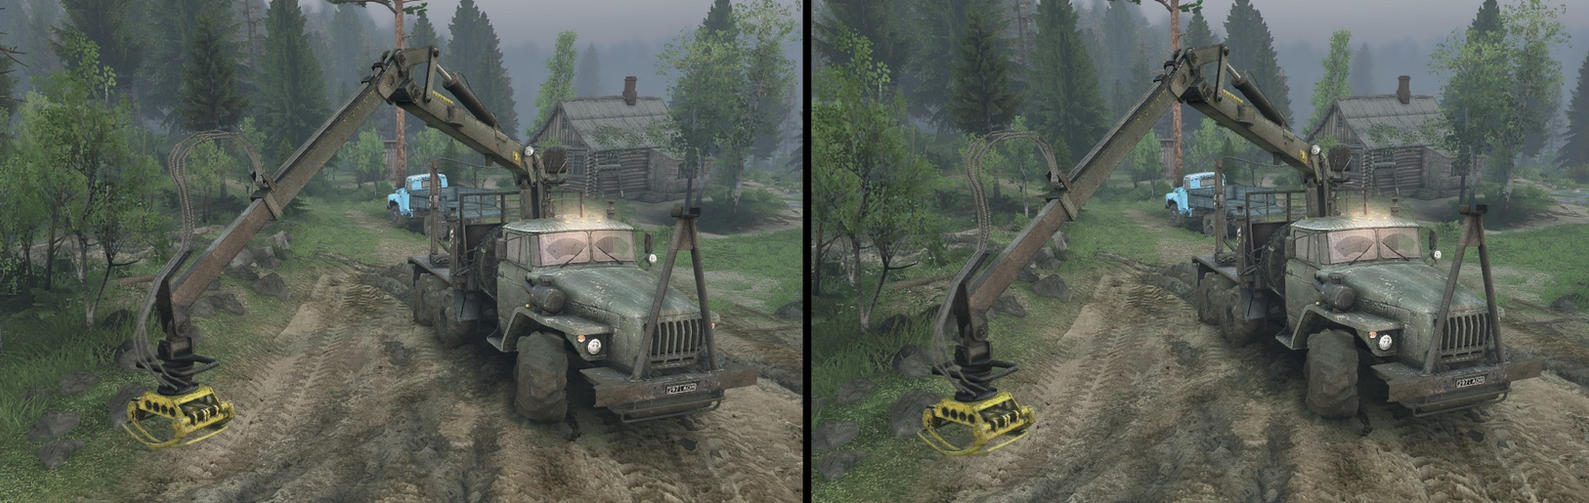 Spintires stereo image for crossview by Spozzn